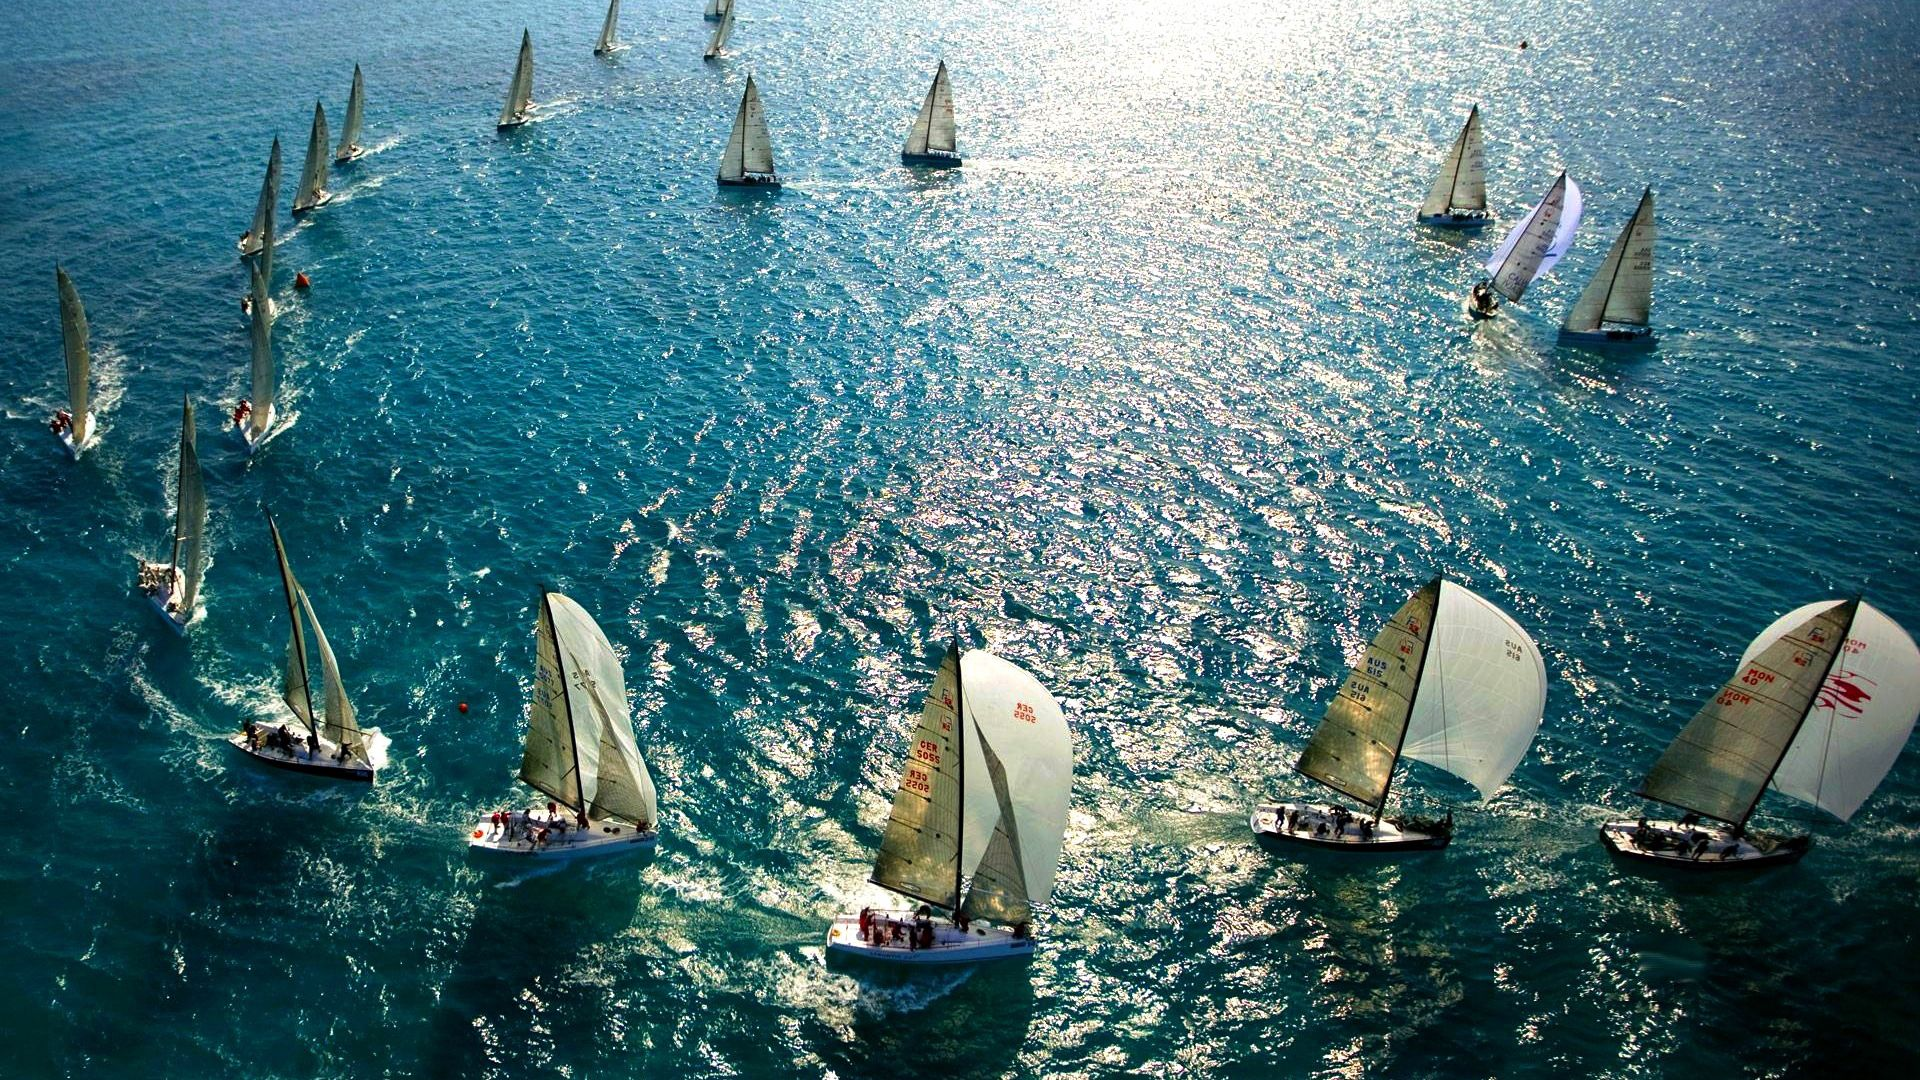 132234 download wallpaper Miscellanea, Miscellaneous, Sail, Sea, Swimming, Lot screensavers and pictures for free